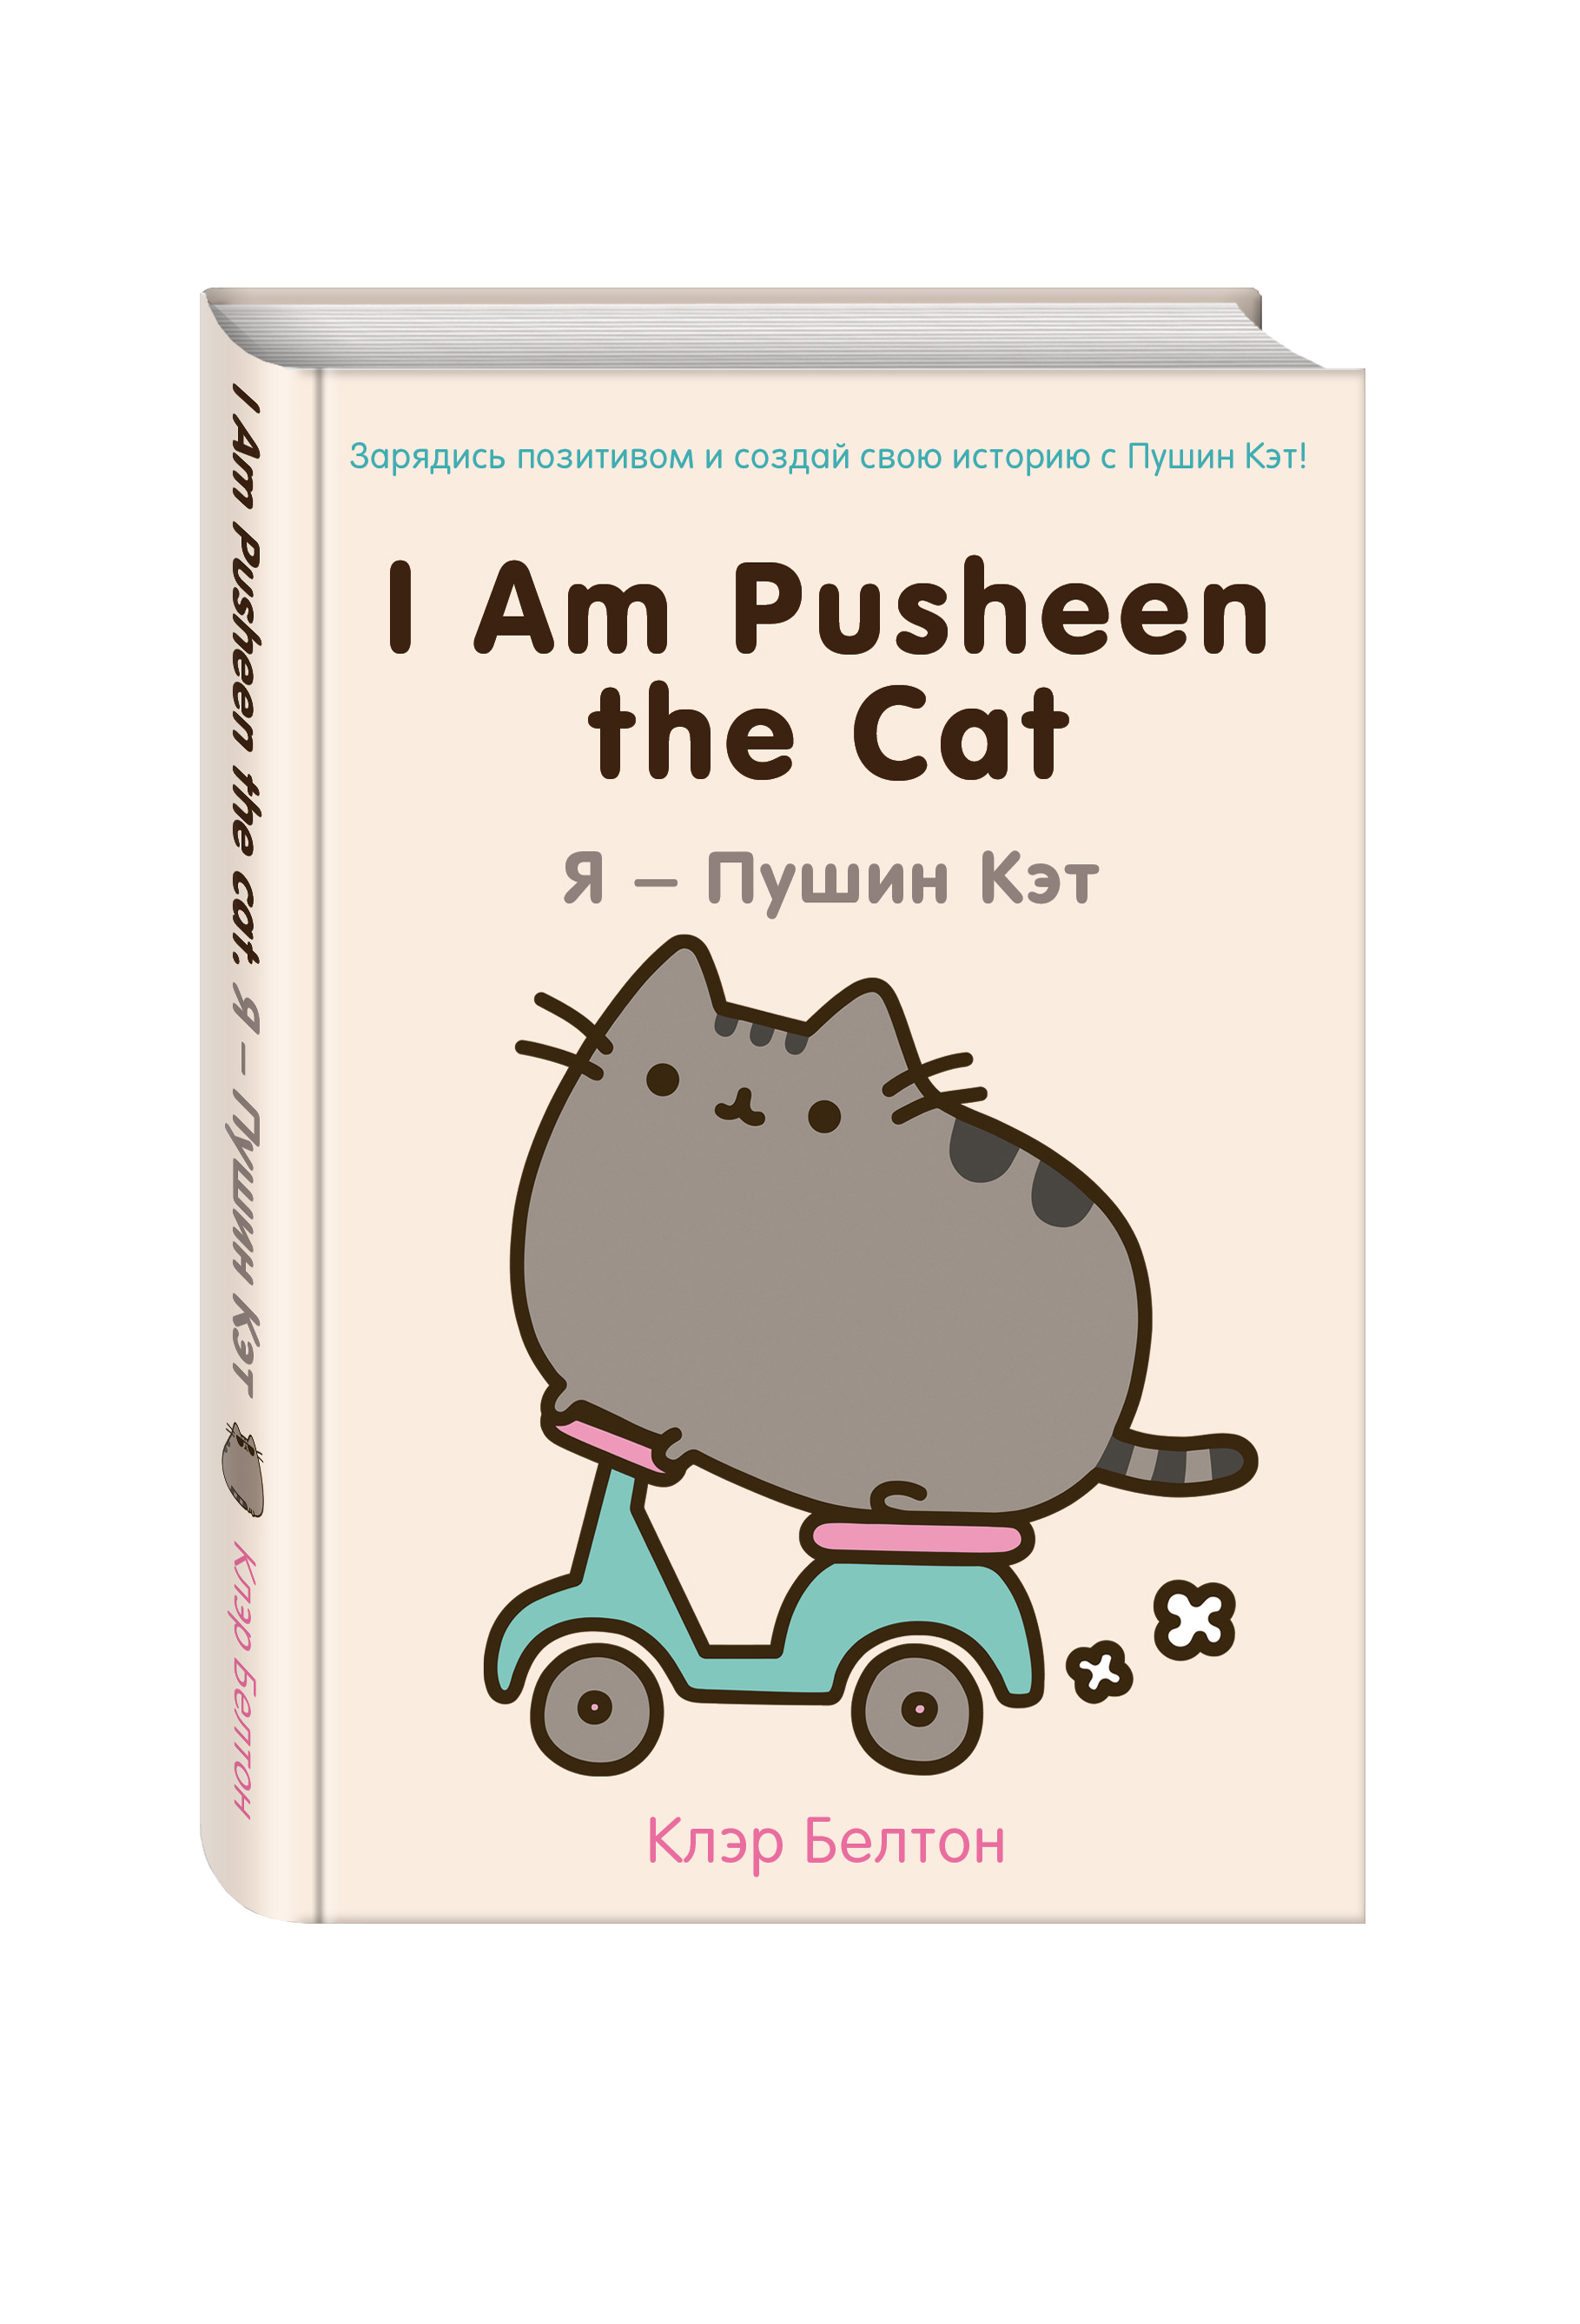 цена Клэр Белтон I Am Pusheen the Cat. Я - Пушин Кэт